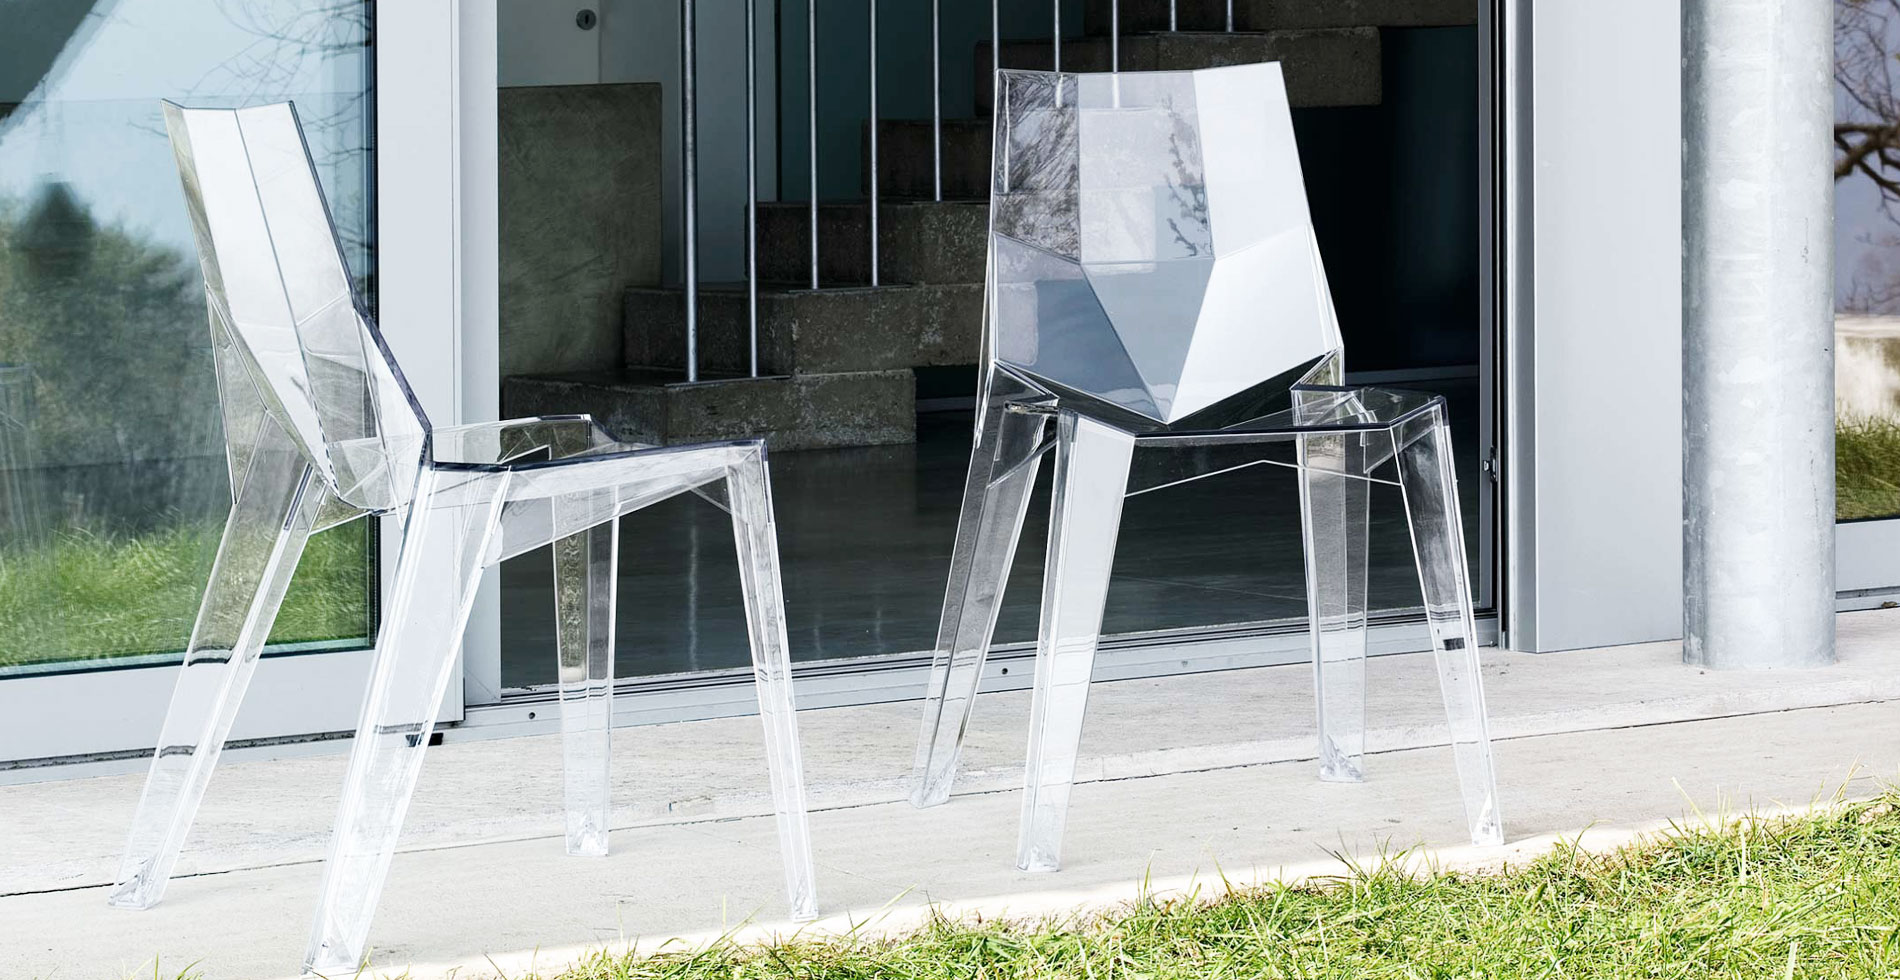 POLYCARBONATE DESIGN CHAIR DESIGN BLOG